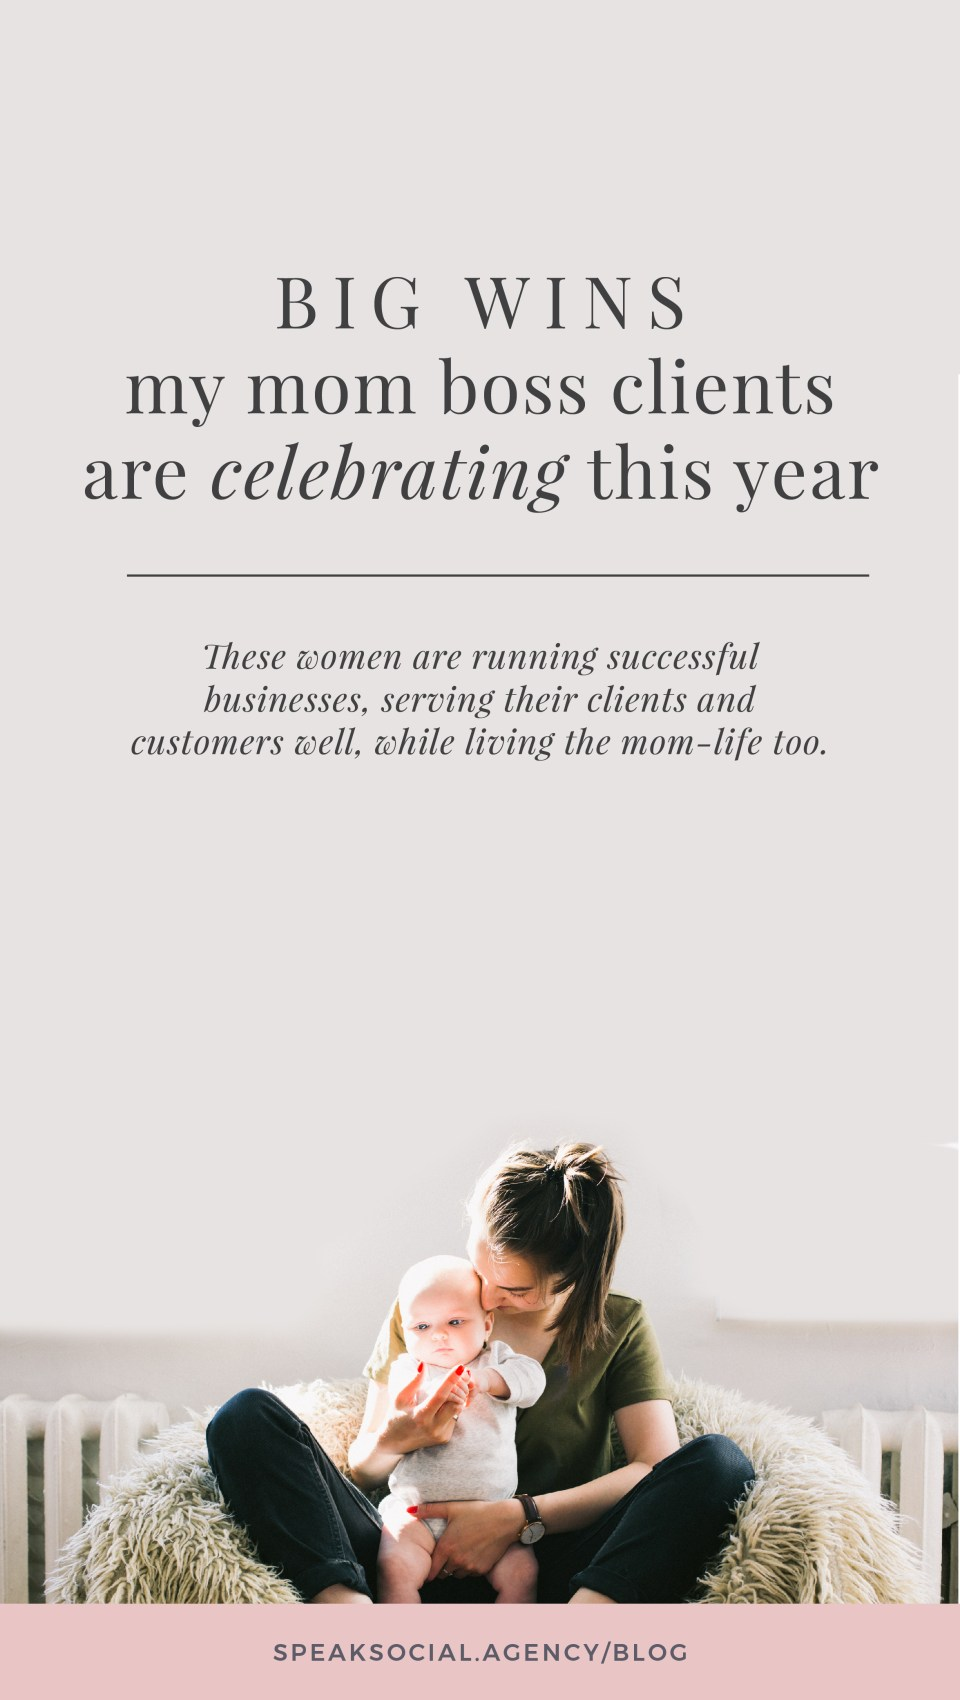 Big wins these mom-bosses are celebrating this year!